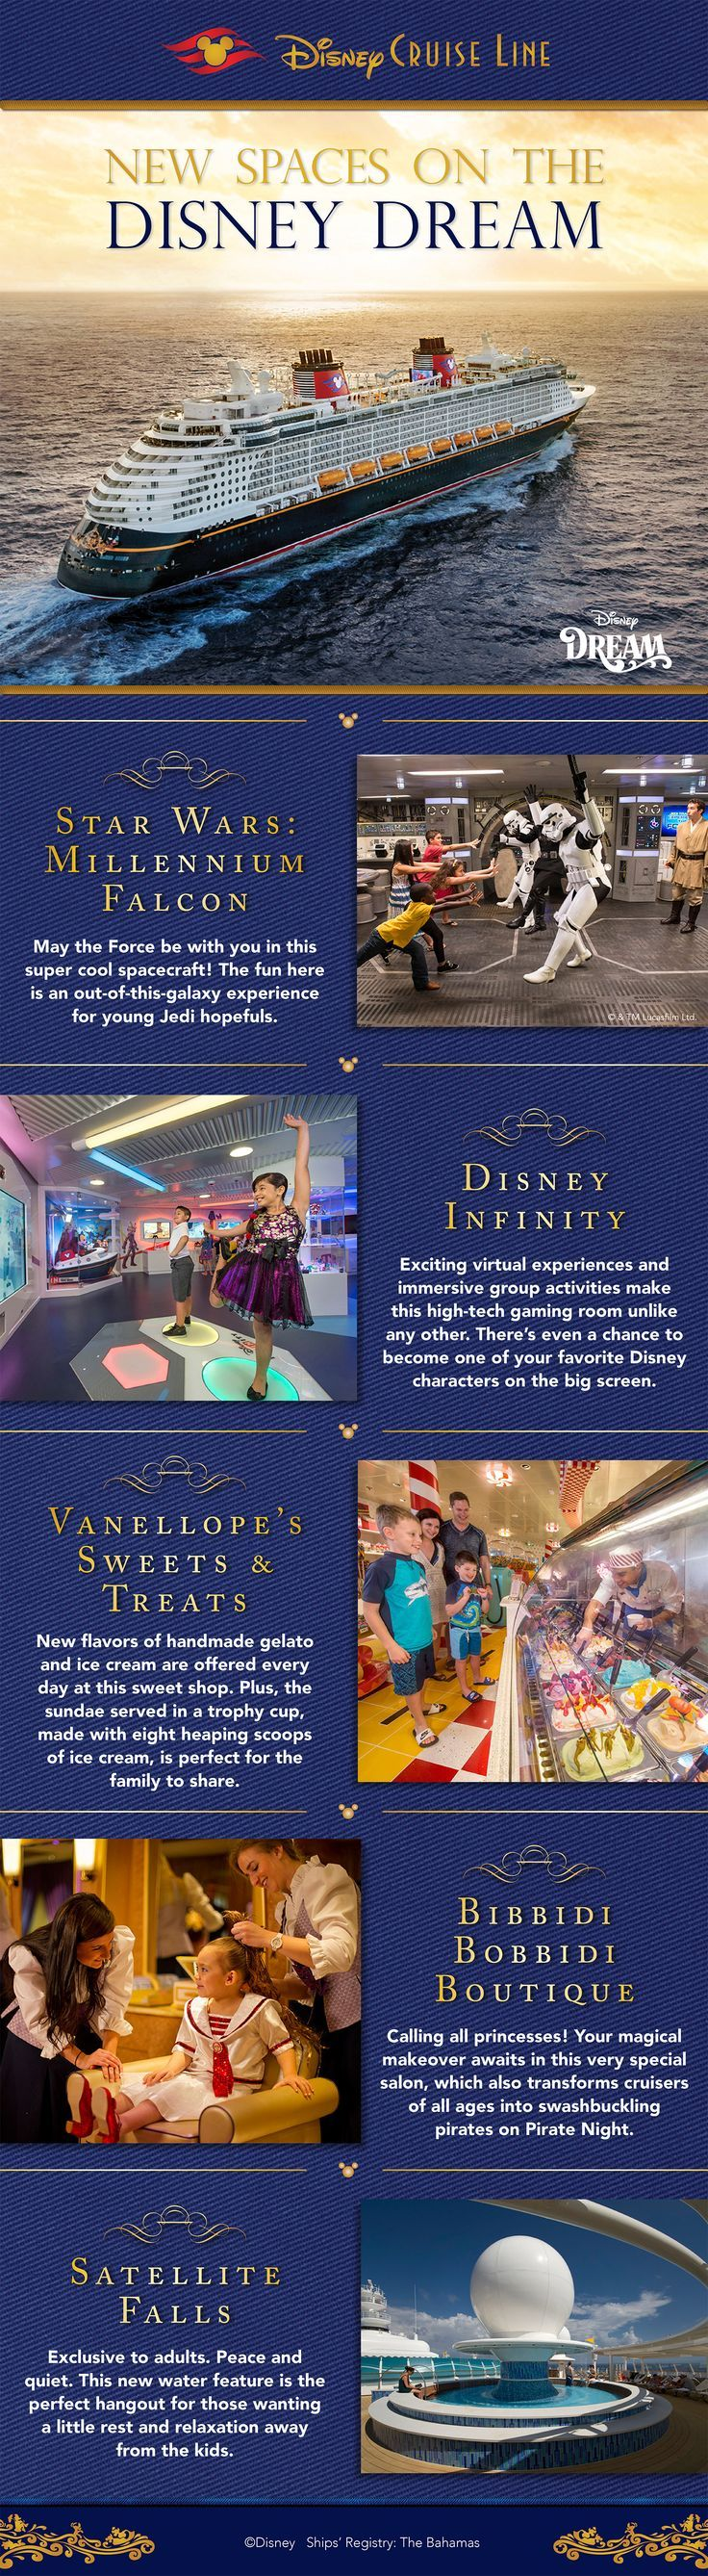 Disney Cruise Line has recently debuted brand-new spaces on the Disney Dream, including the first-ever play area on a Disney ship themed to Star Wars! Here's an inside look at these new spaces onboard the recently enhanced Disney Dream. crystal@wishuponastarwithus.com | 217-953-0535